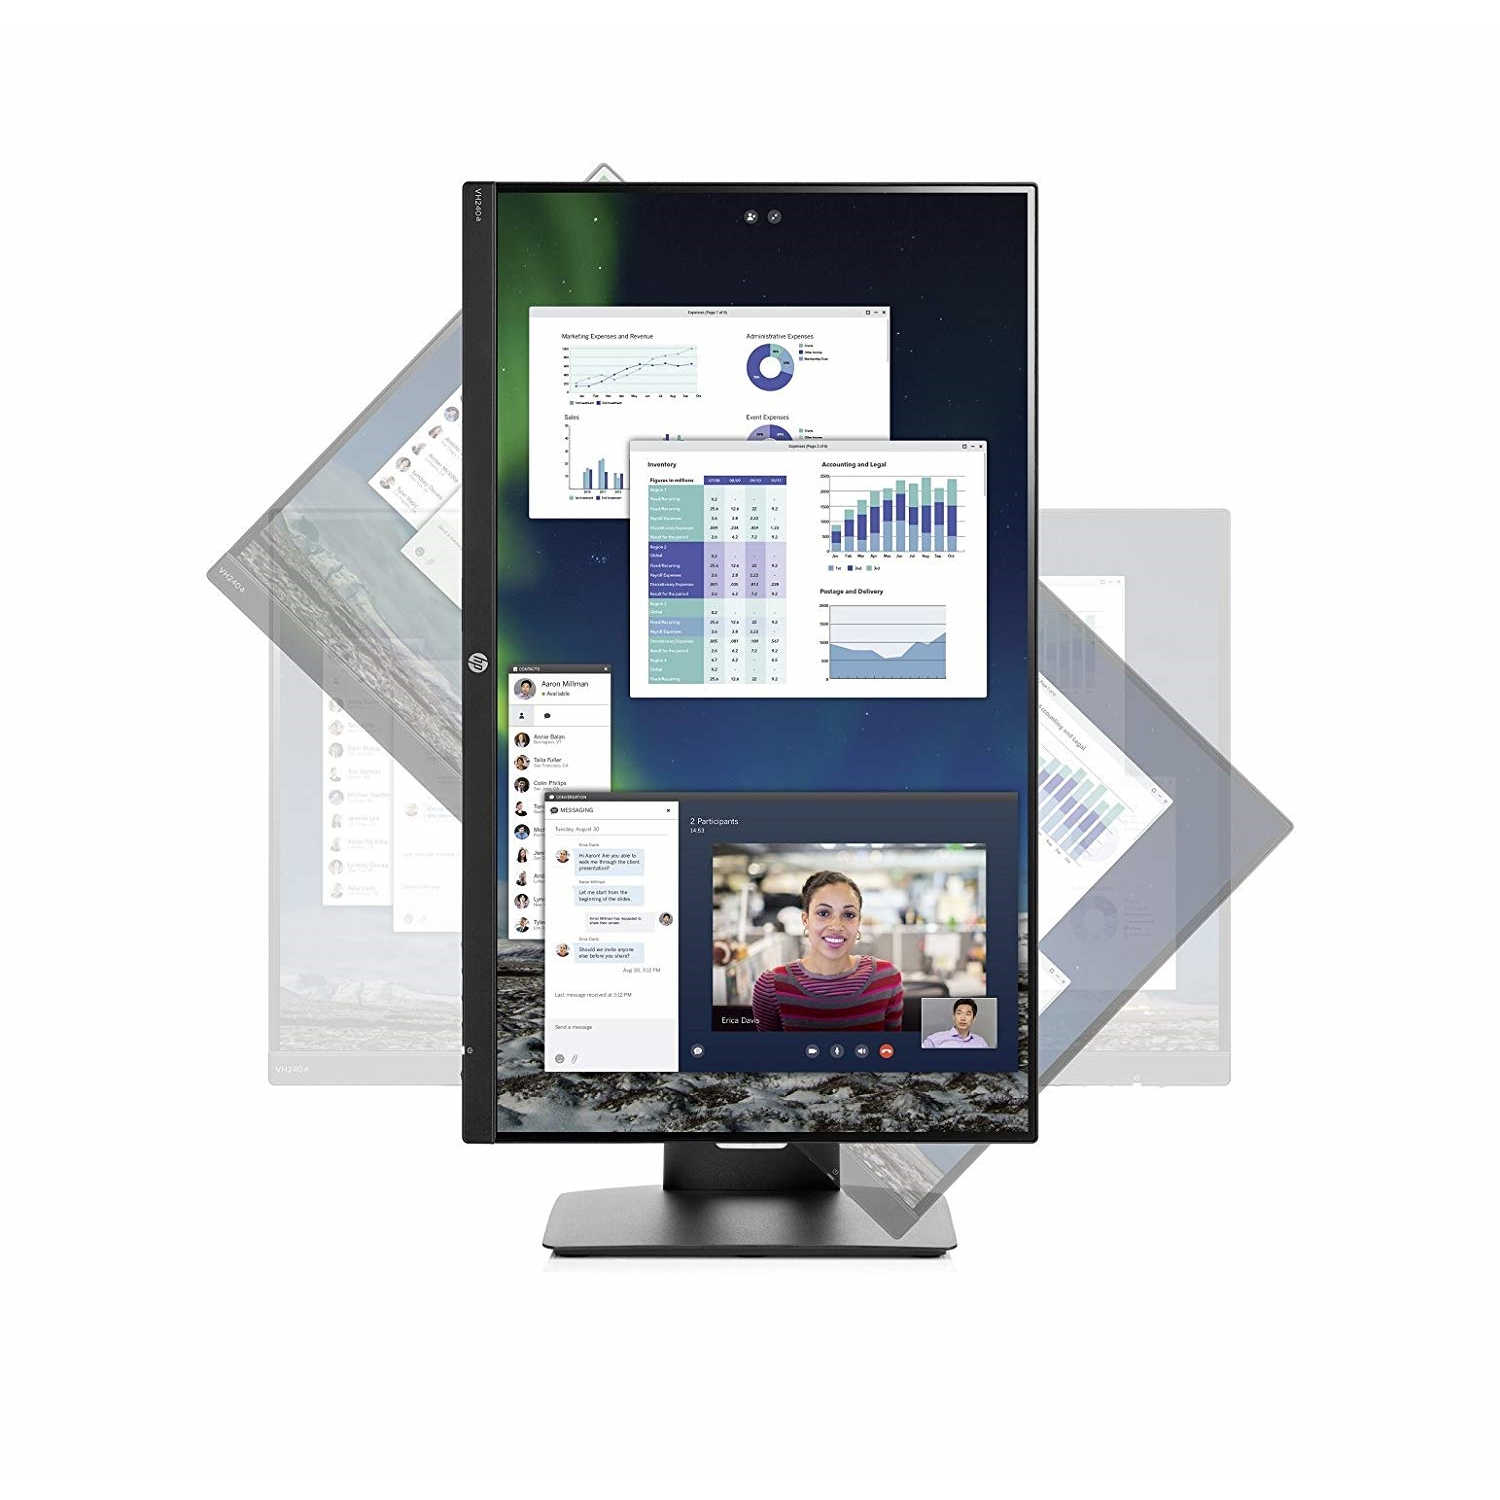 "HP VH240a 1KL30AA 23.8"" 5MS 1920x1080 VGA/HDMI VESA SPEAKER PIVOT SİYAH IPS LED MONITOR"